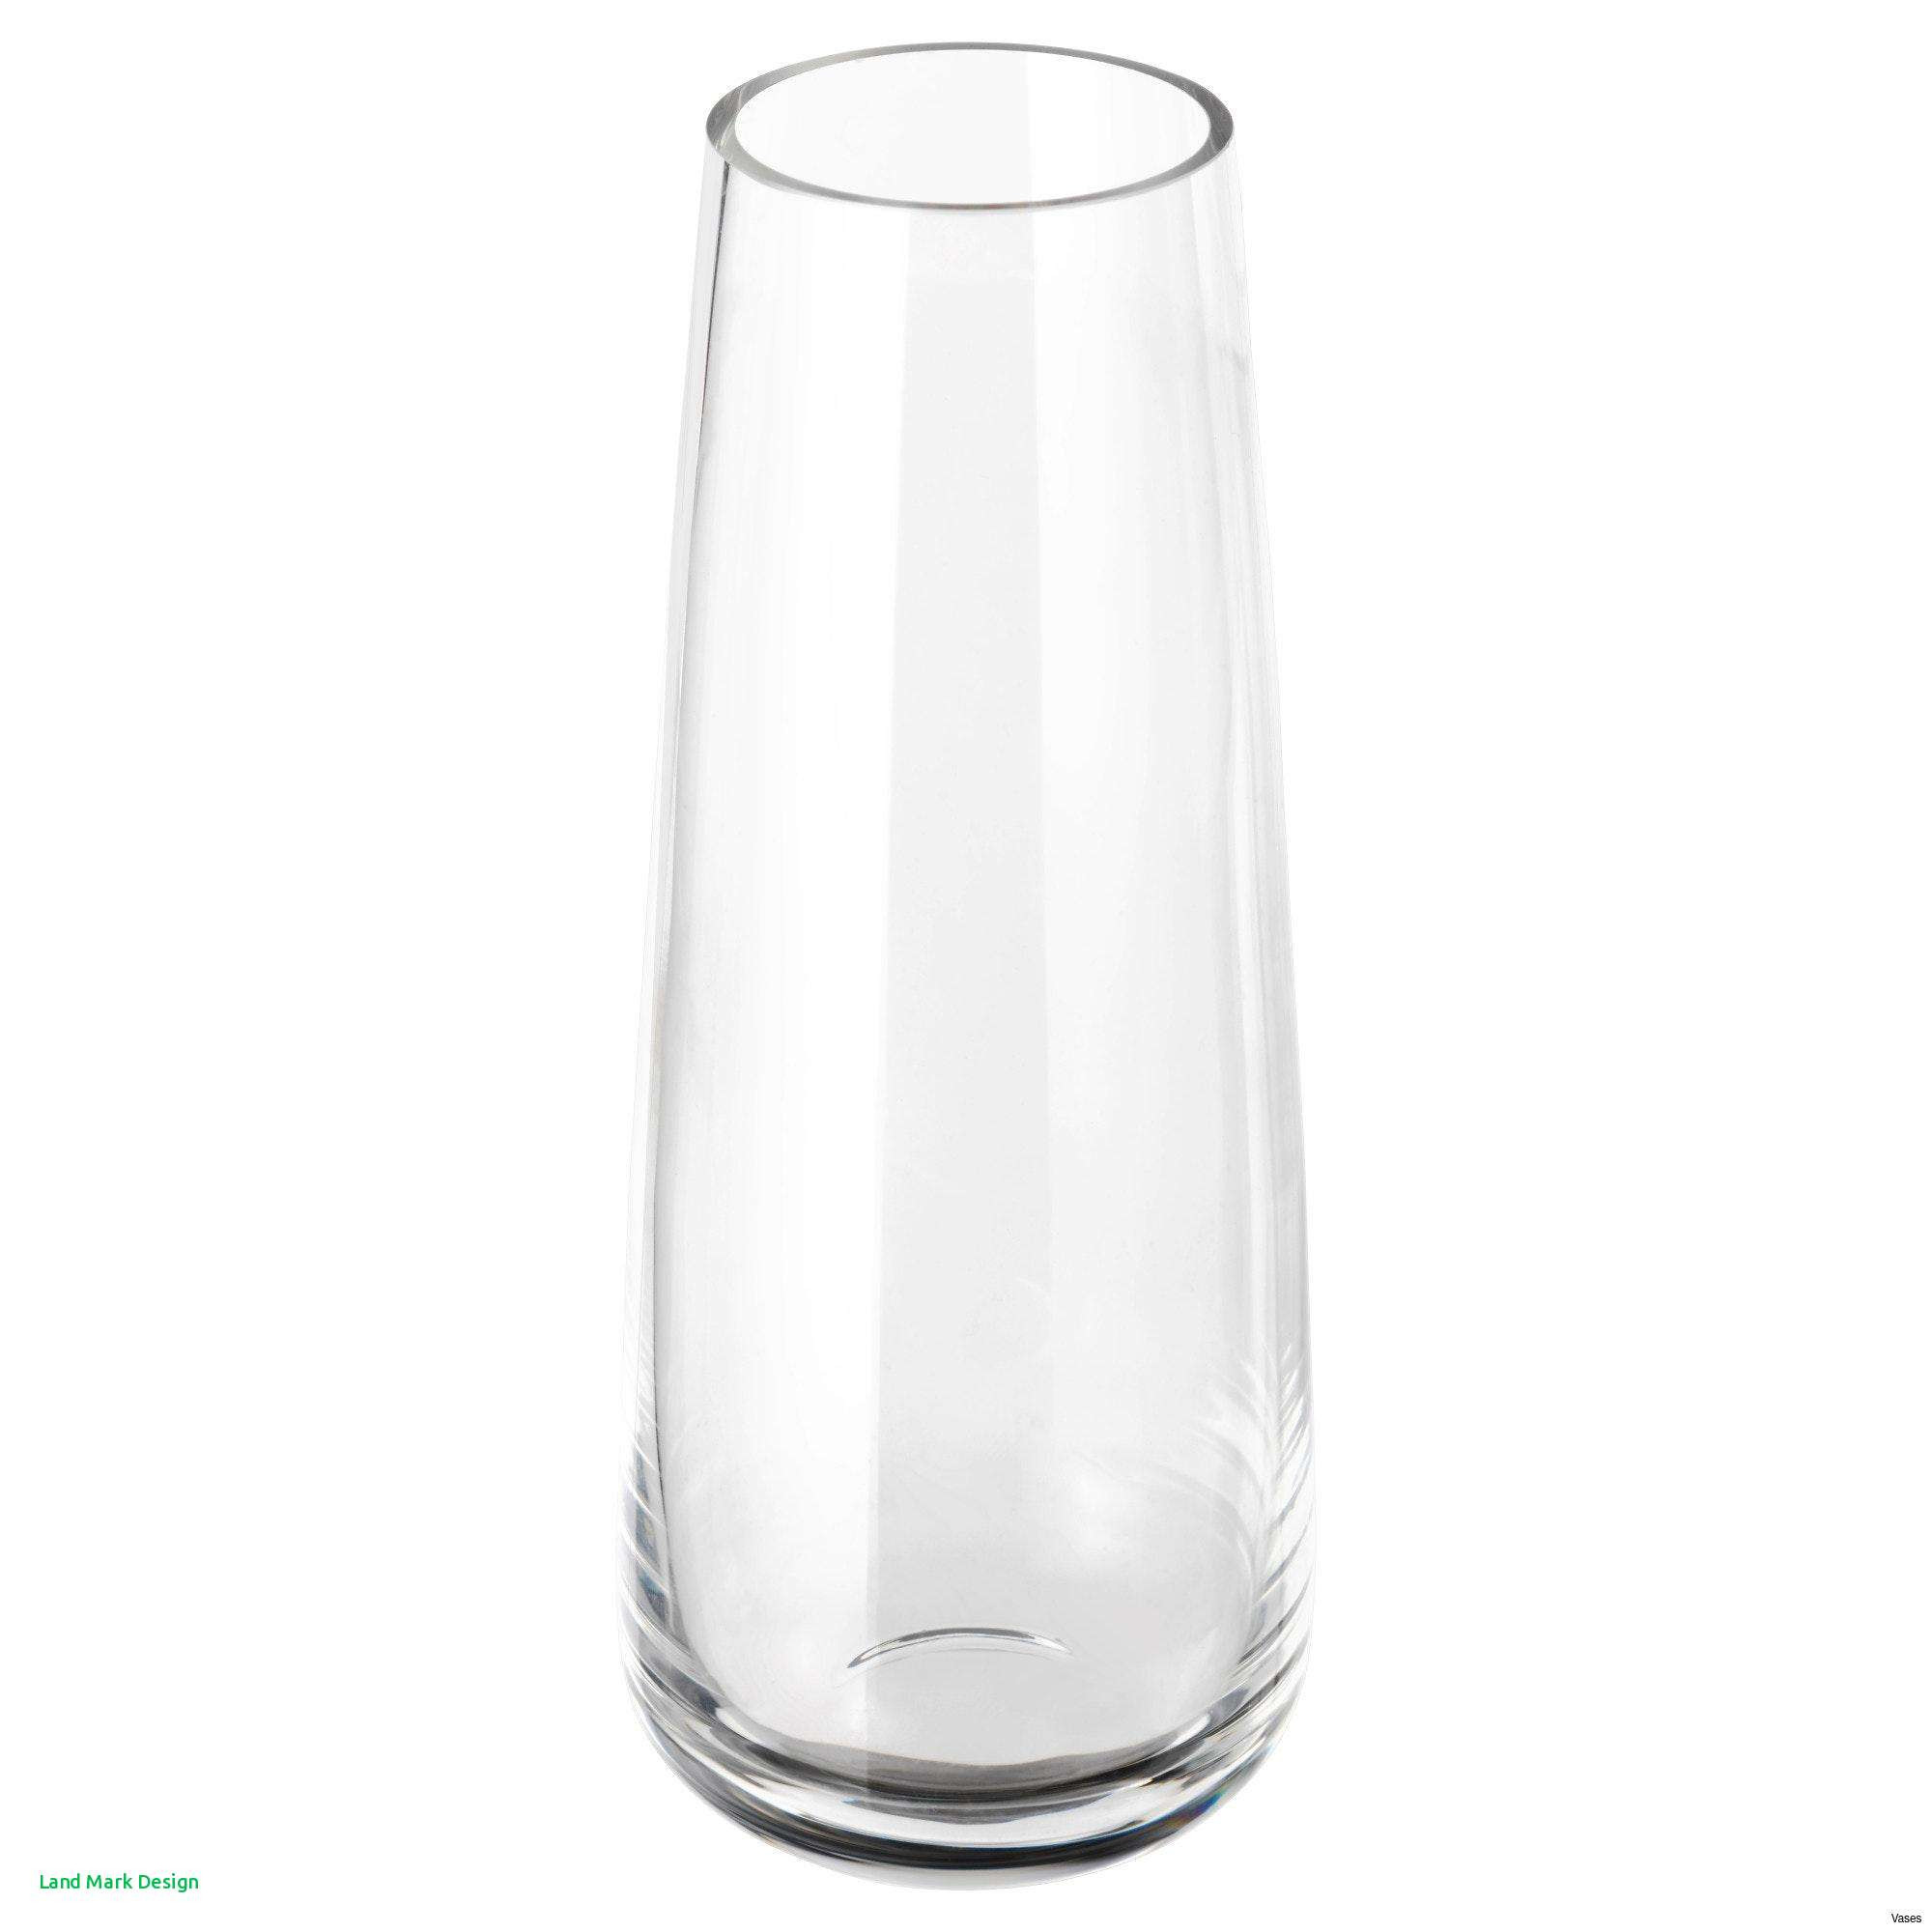 20 Cute Glass Bud Vase Inserts